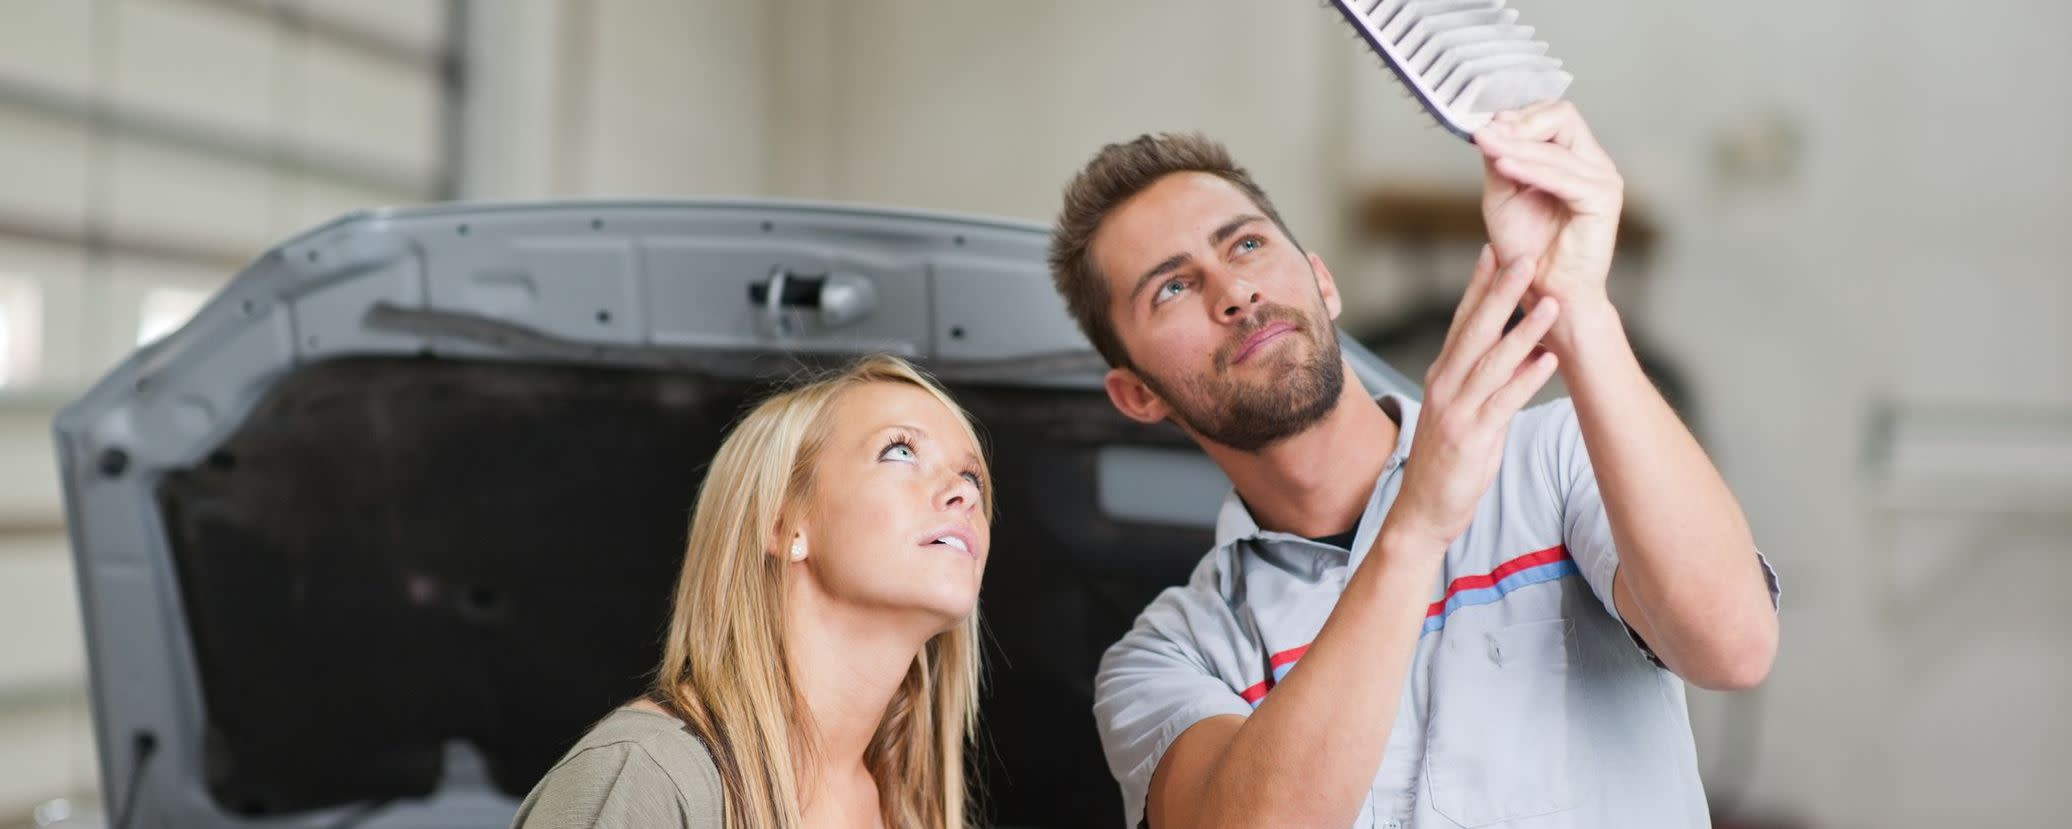 When Should I Get My Car's Air Filter Replaced?